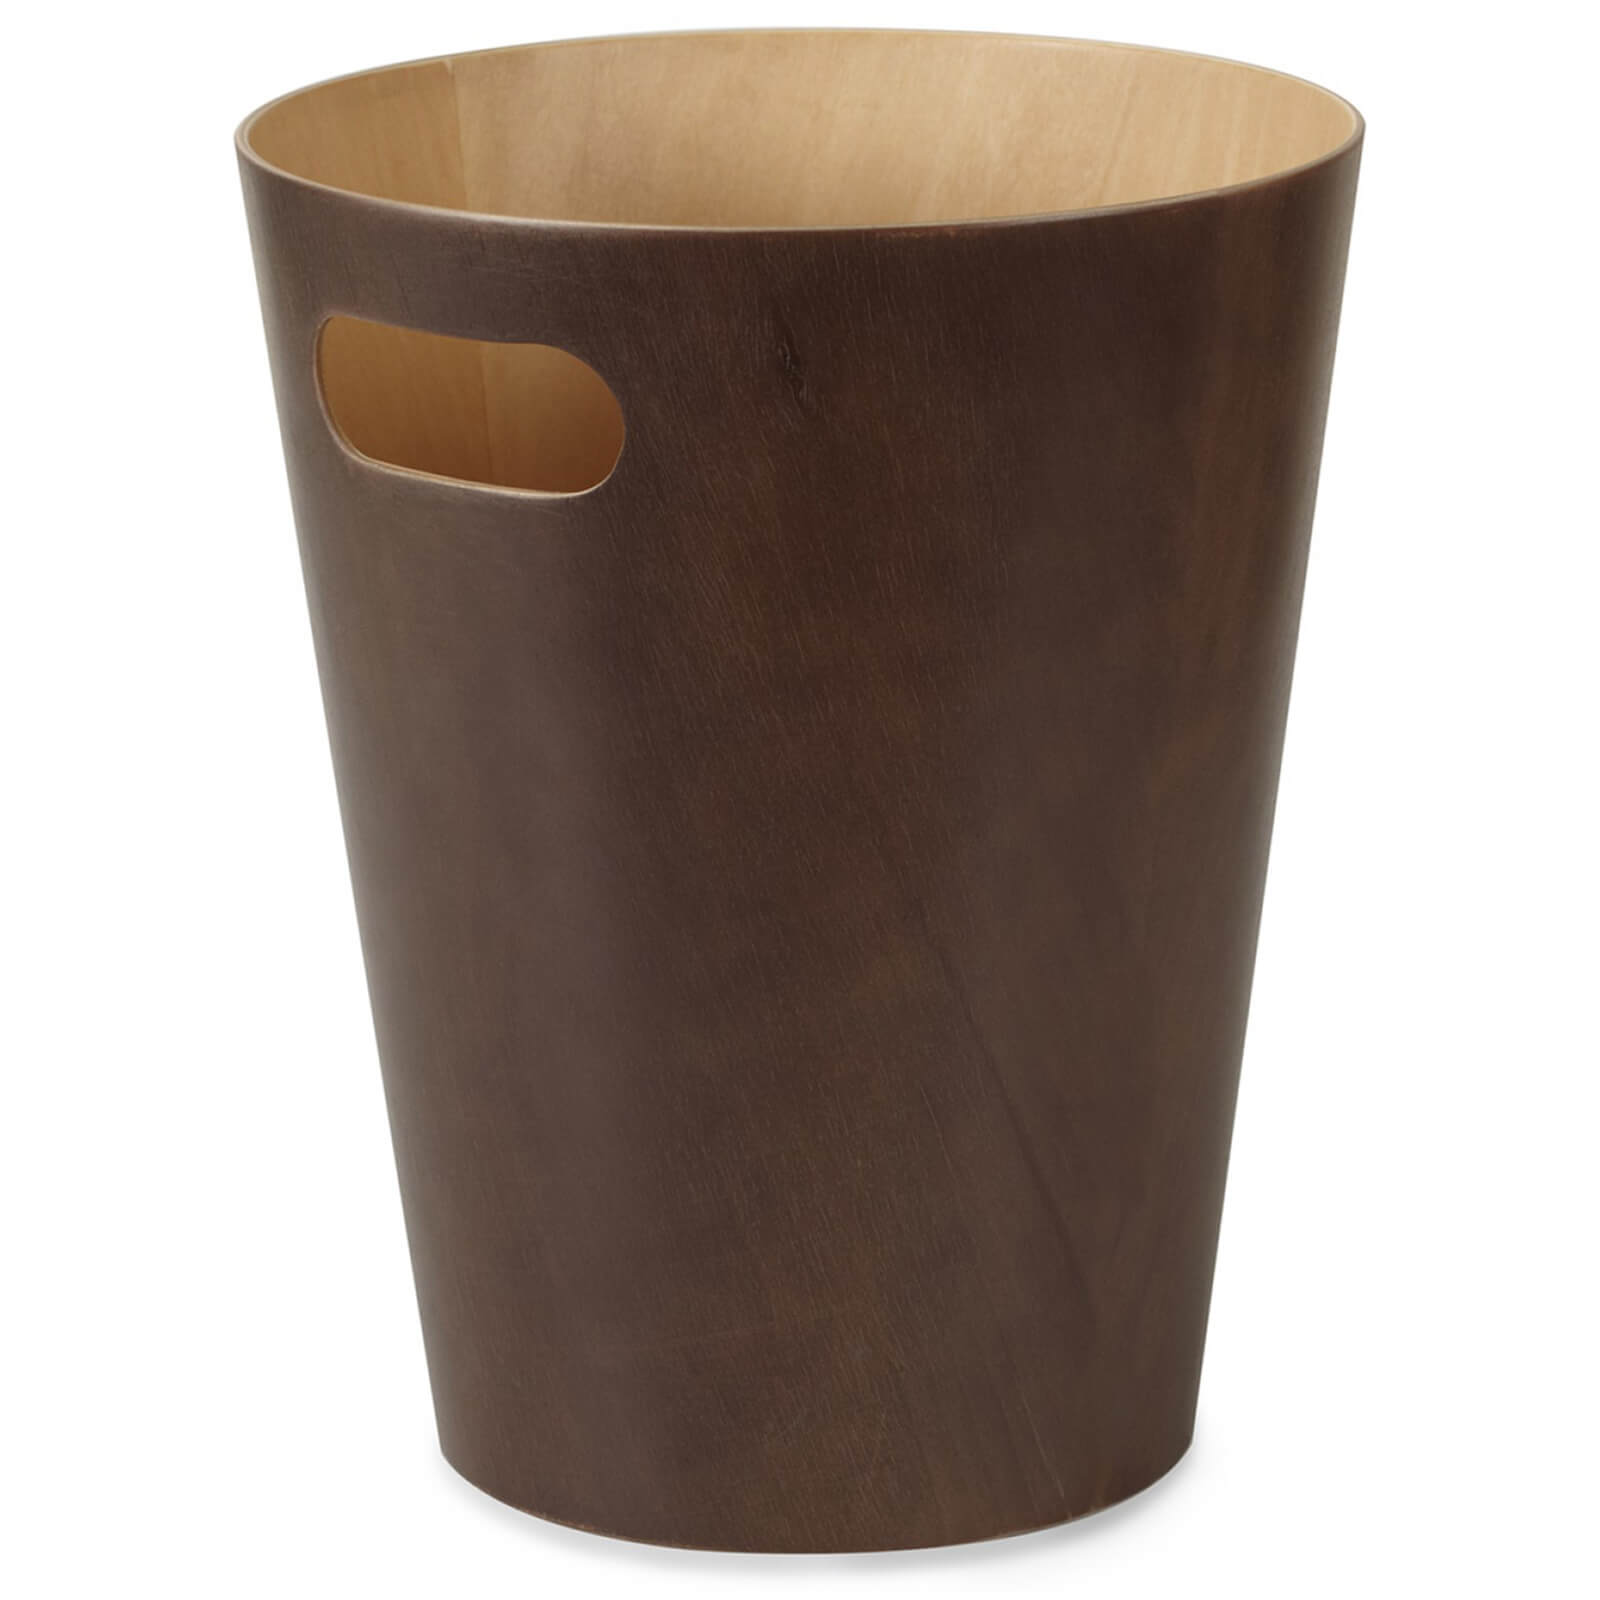 Umbra Woodrow Waste Can - Espresso